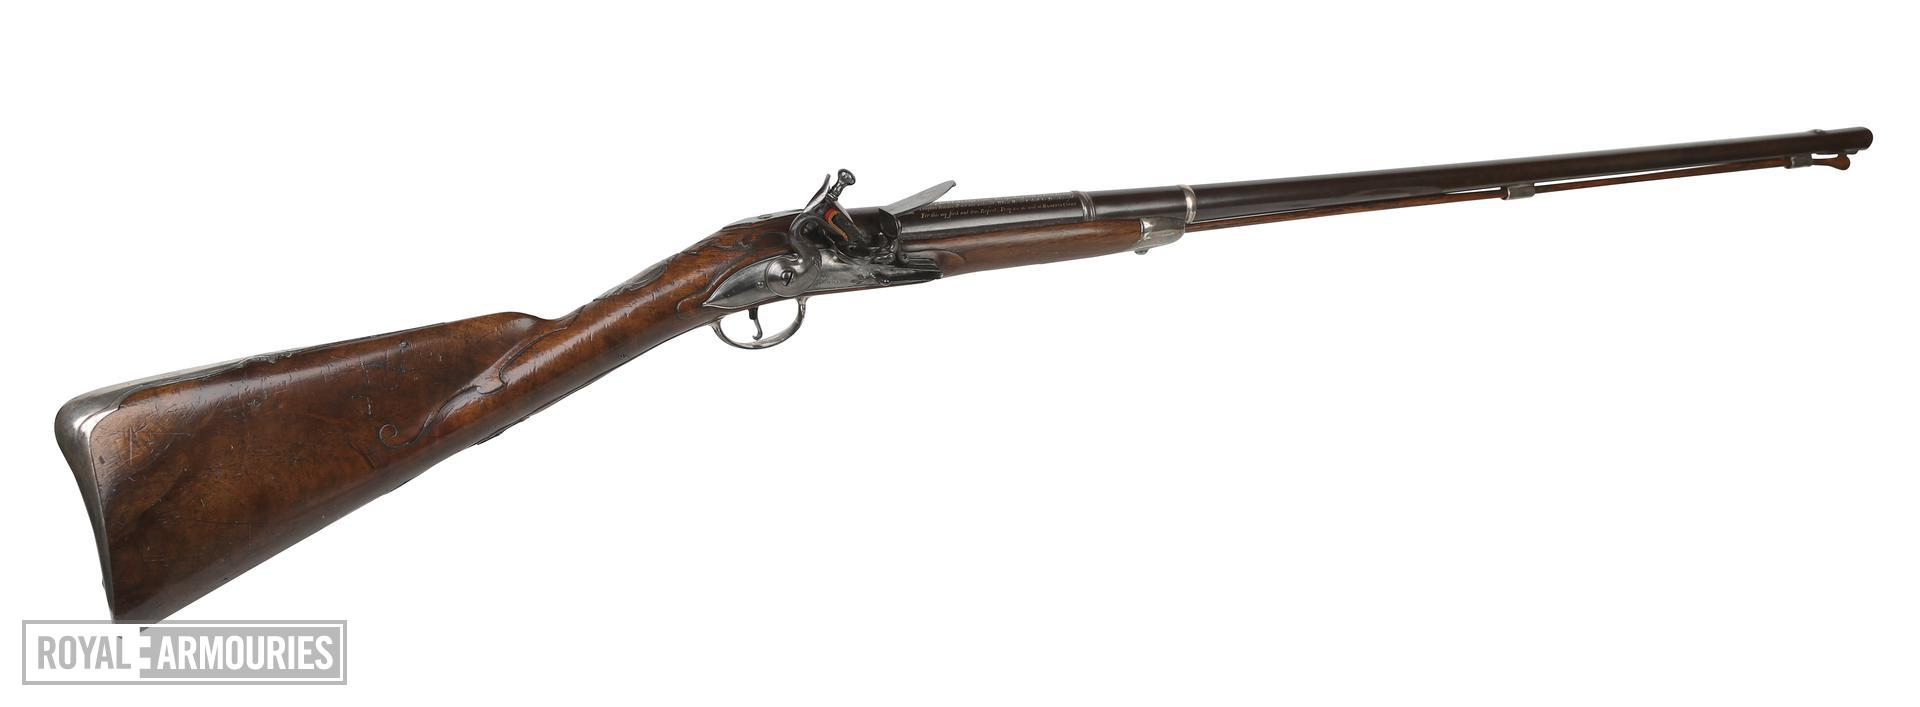 Flintlock sporting gun by William mills made for Thomas, 1st Earl Coningsby. XII.1789